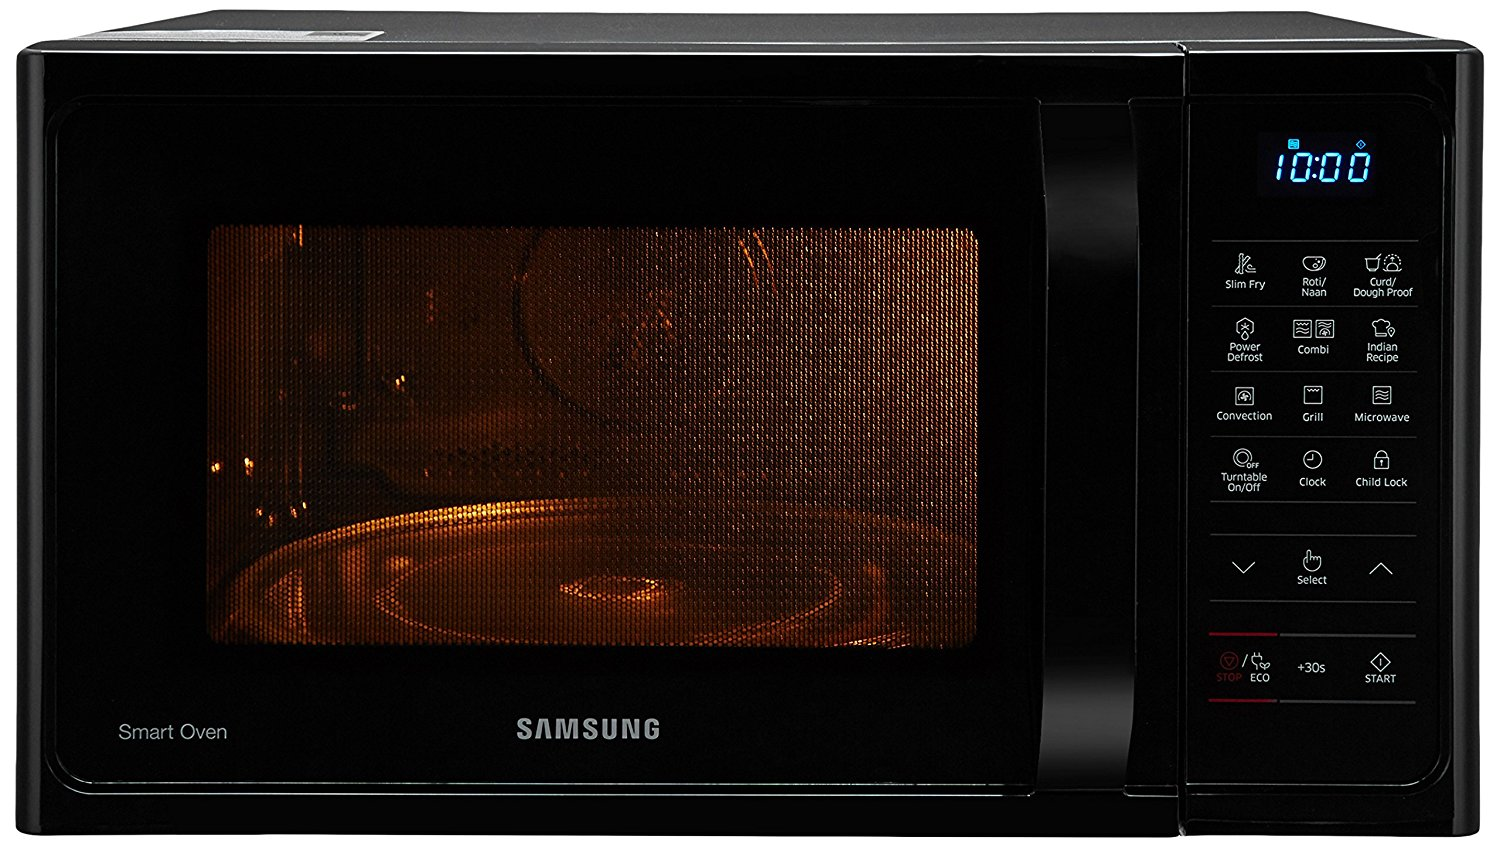 samsung 28 liters microwave oven